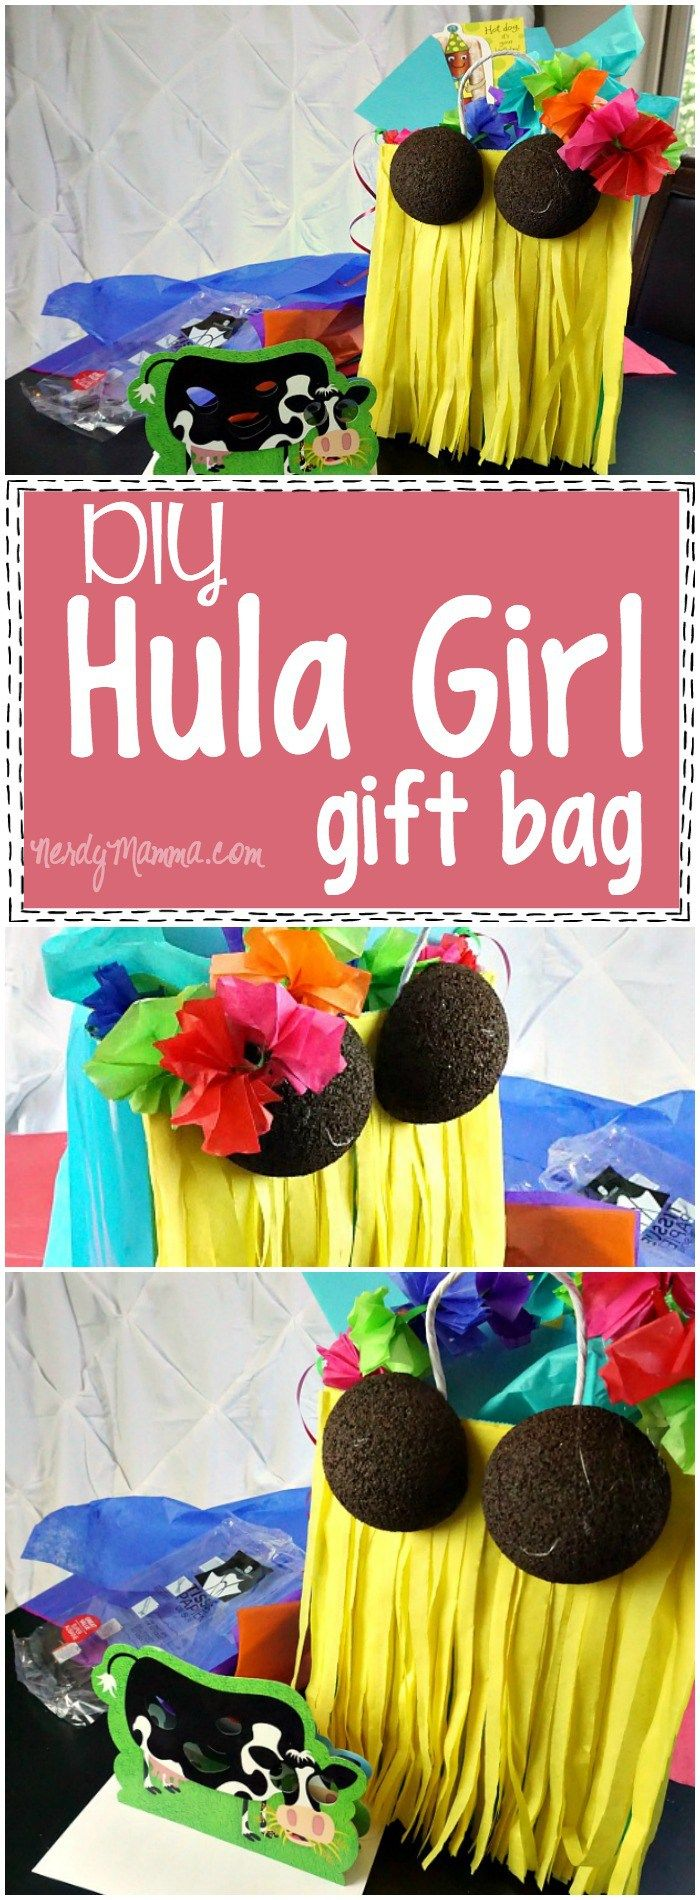 Make this DIY Hula Girl Gift Bag for a birthday or summer party! It's easy to create for this Hawaiian theme. Get crafty with this fun project.